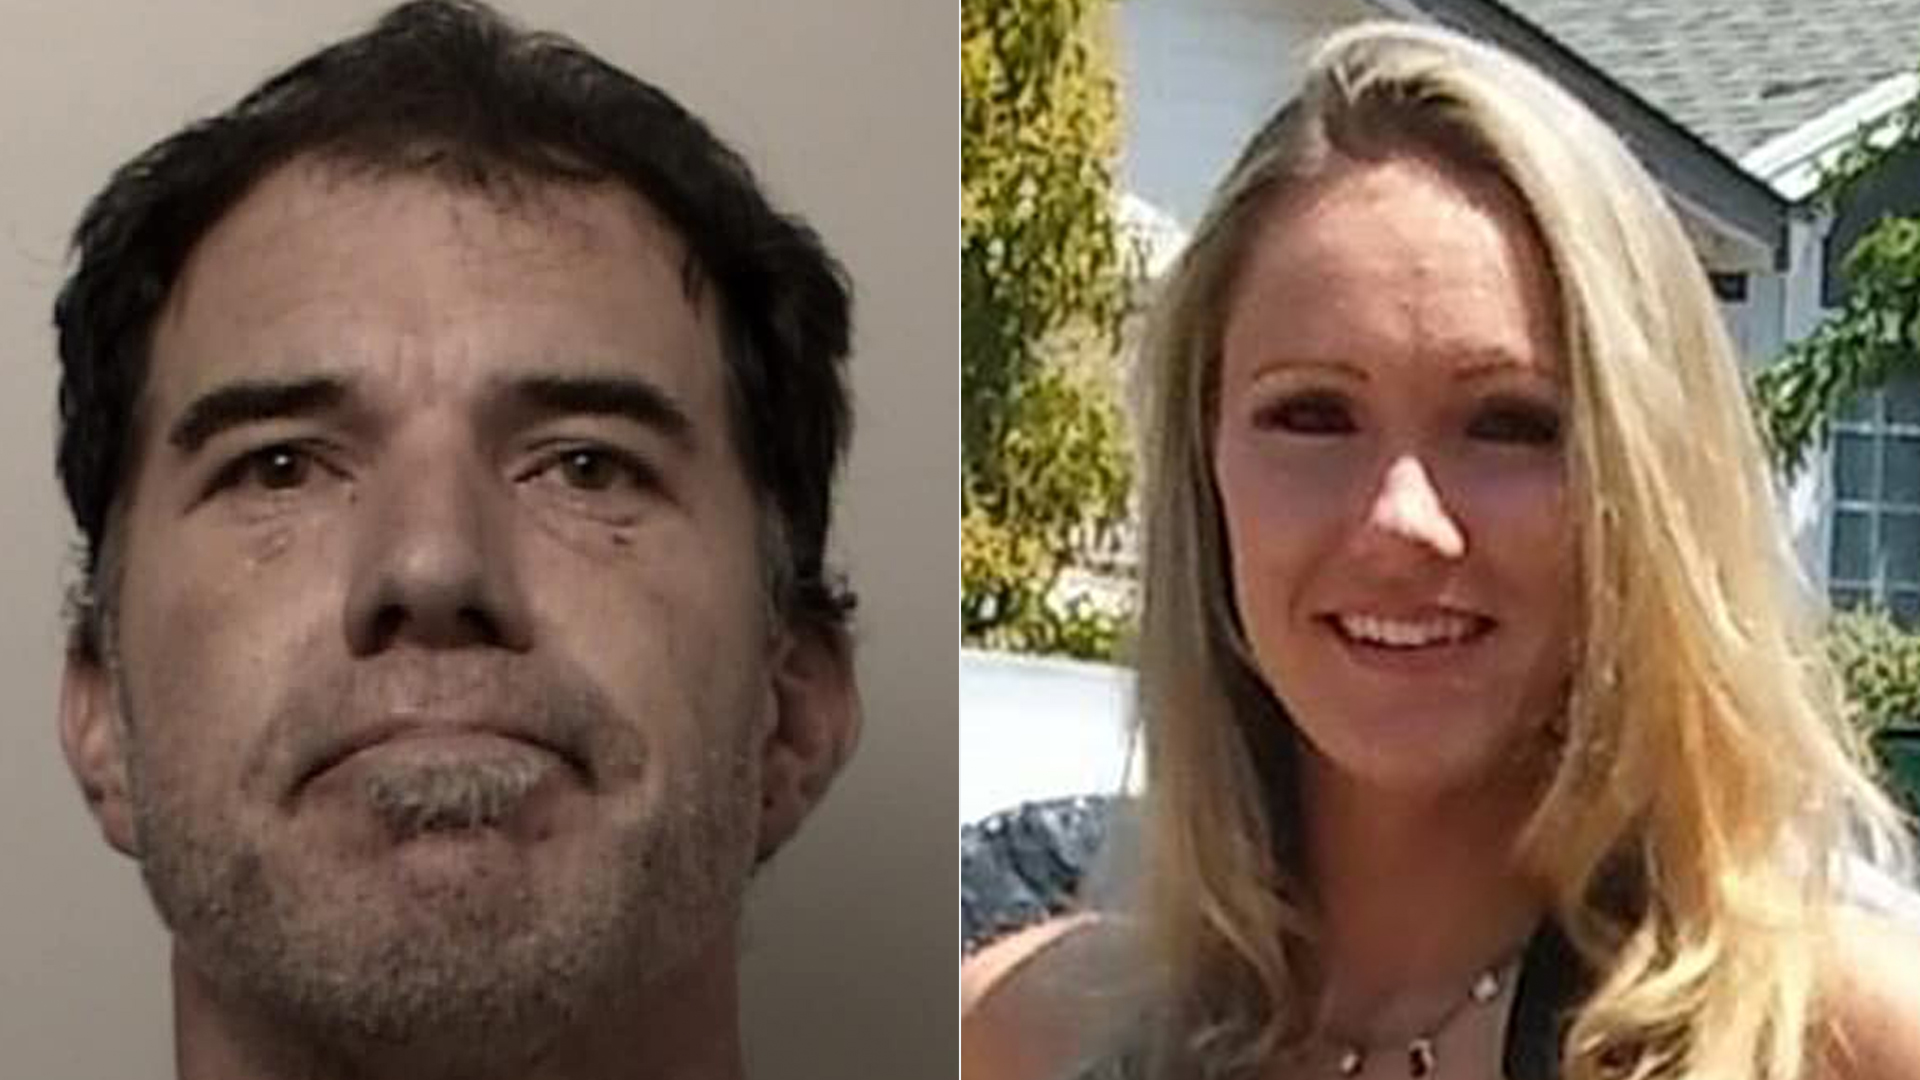 Anthony and Heather Gumina appear in photos released by the El Dorado County Sheriff's Office during the summer of 2019.